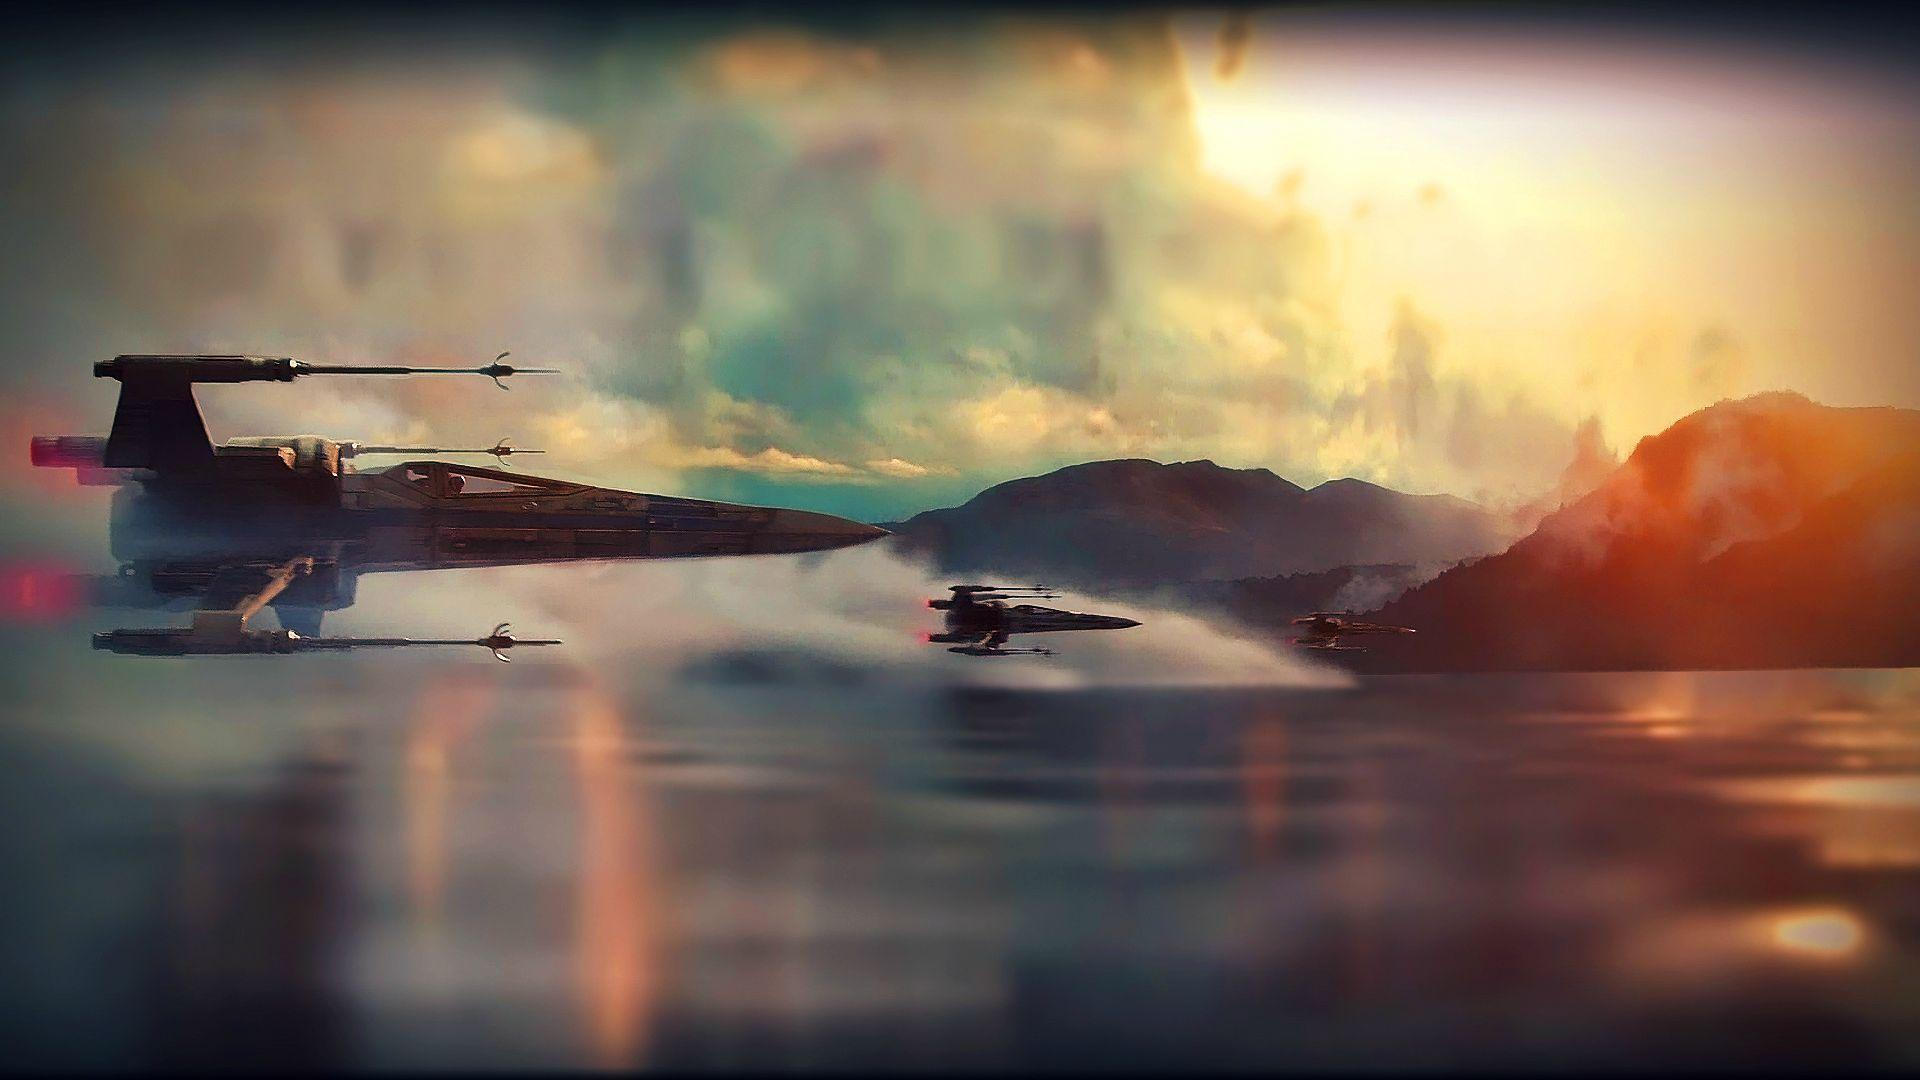 star wars ep vii the force awakens teaser x wing super saturated